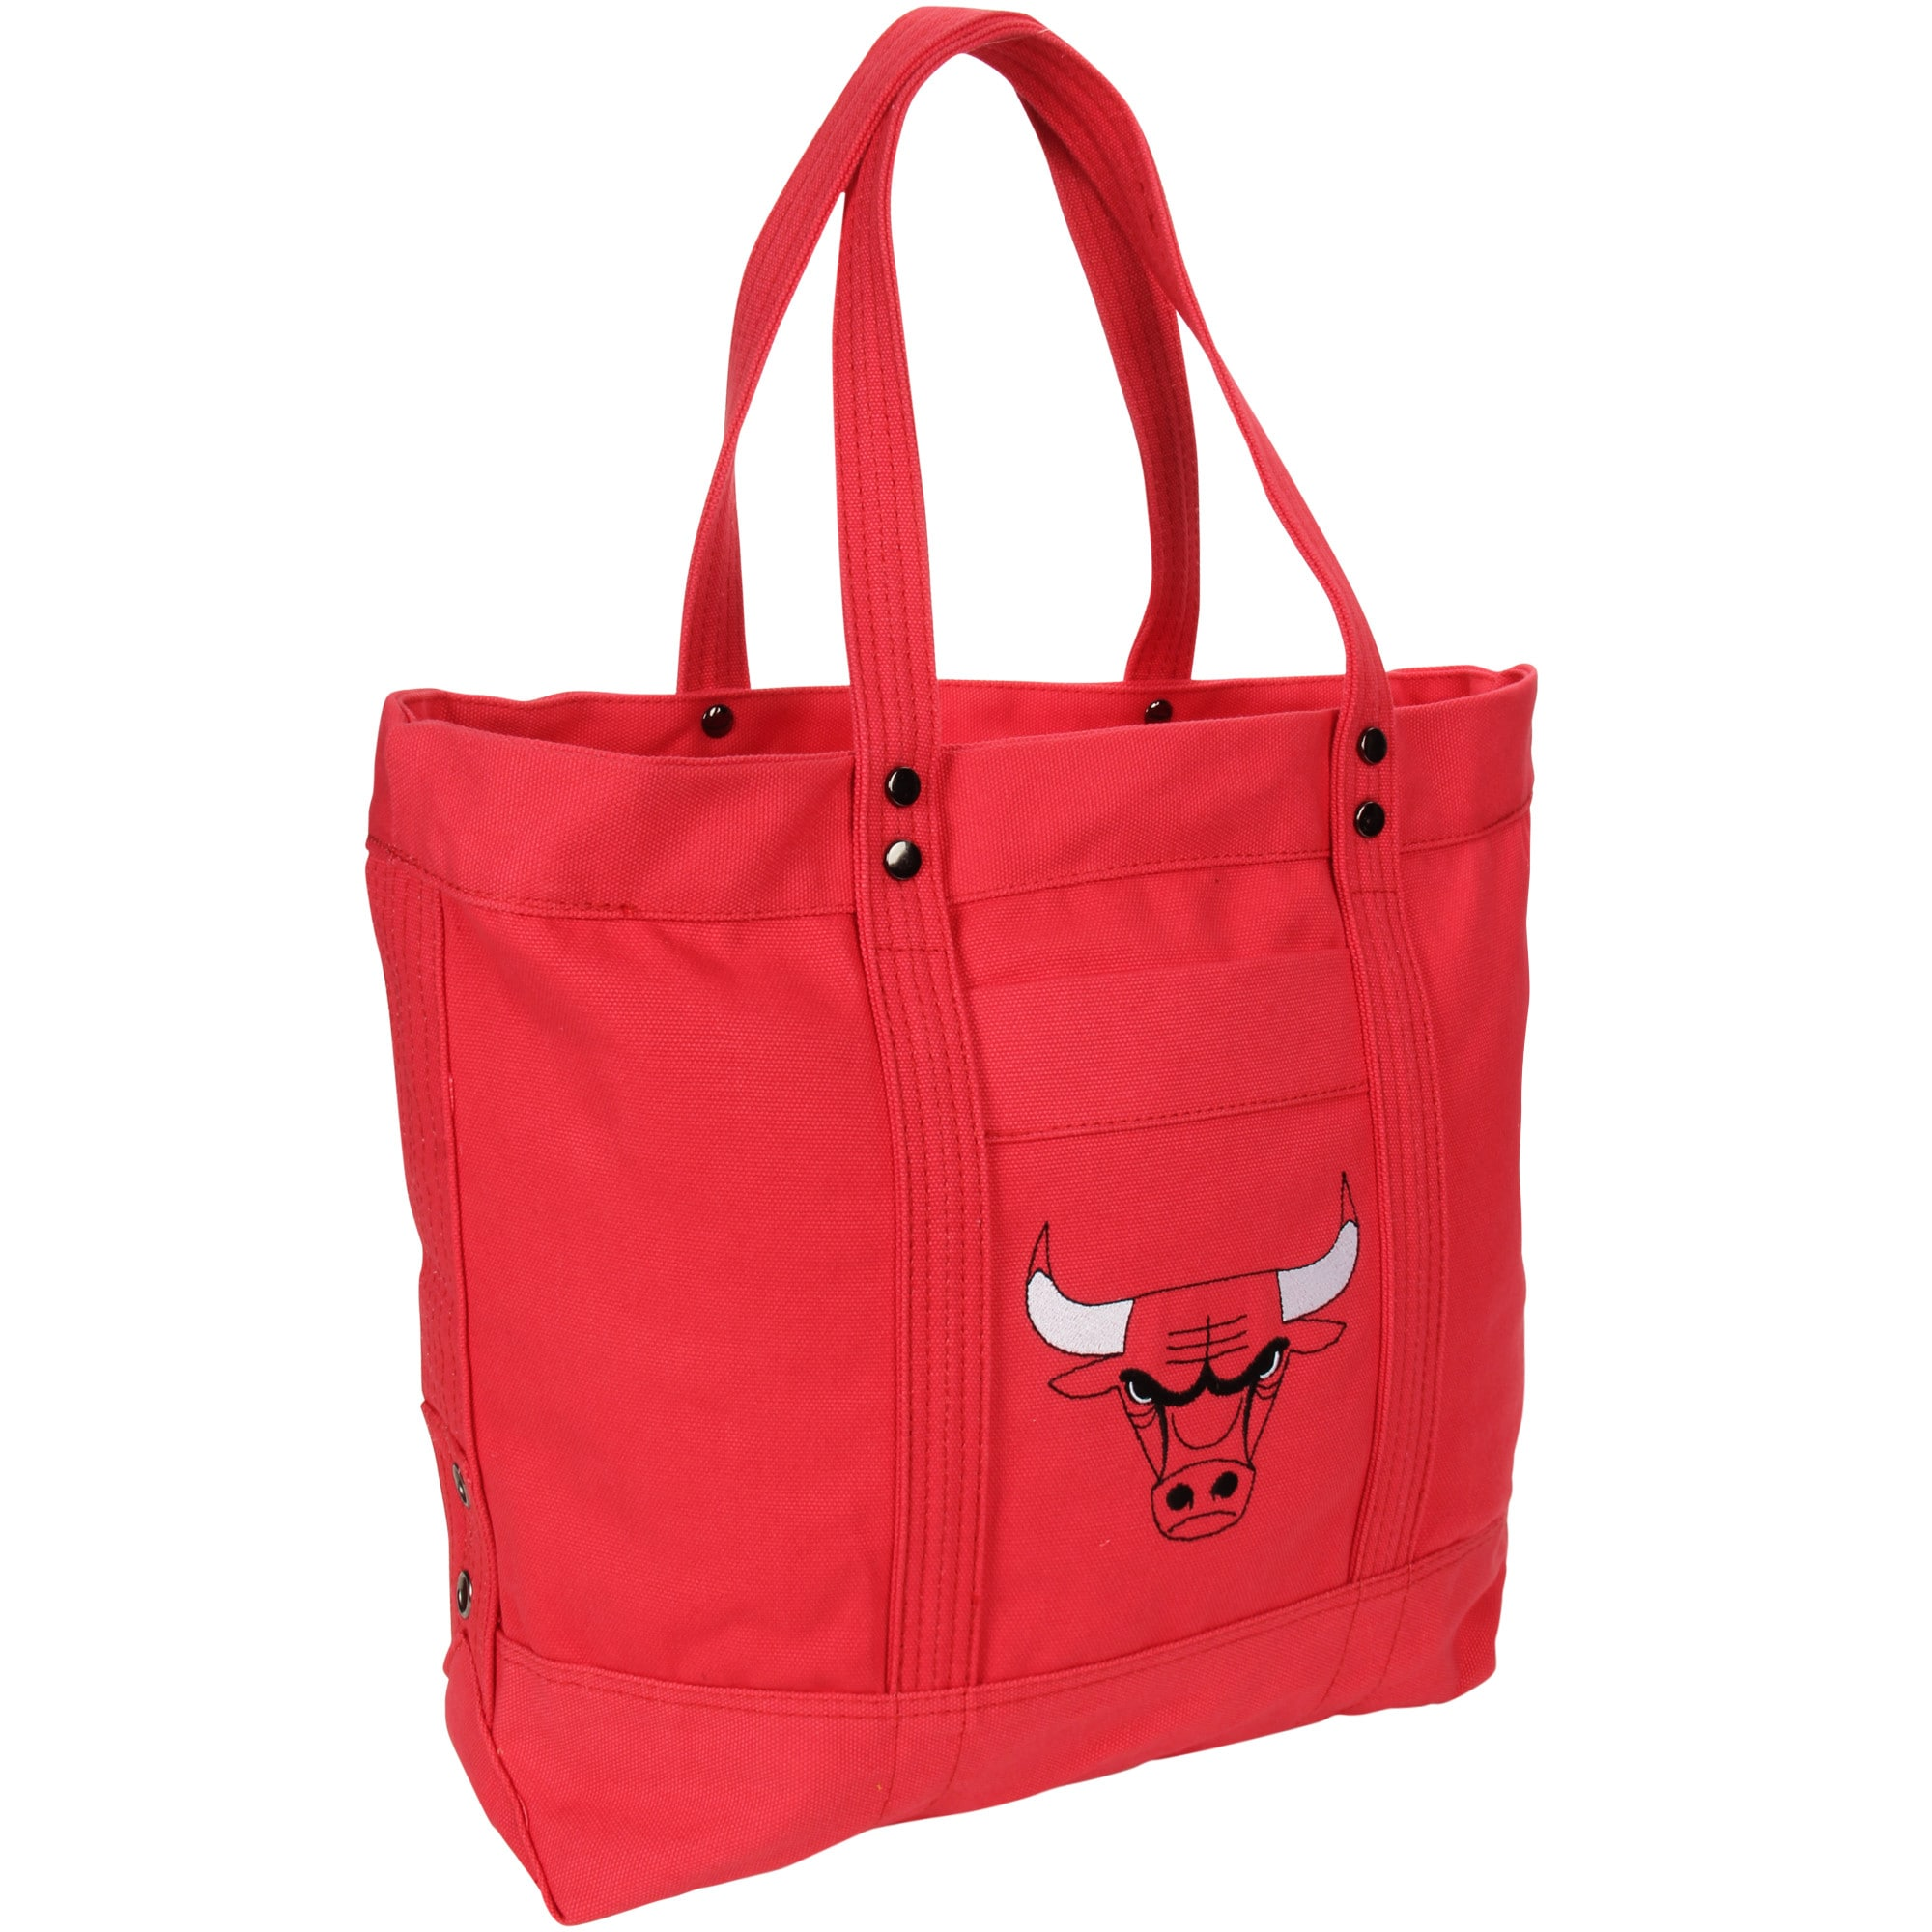 Chicago Bulls Women's High End Canvas Tote